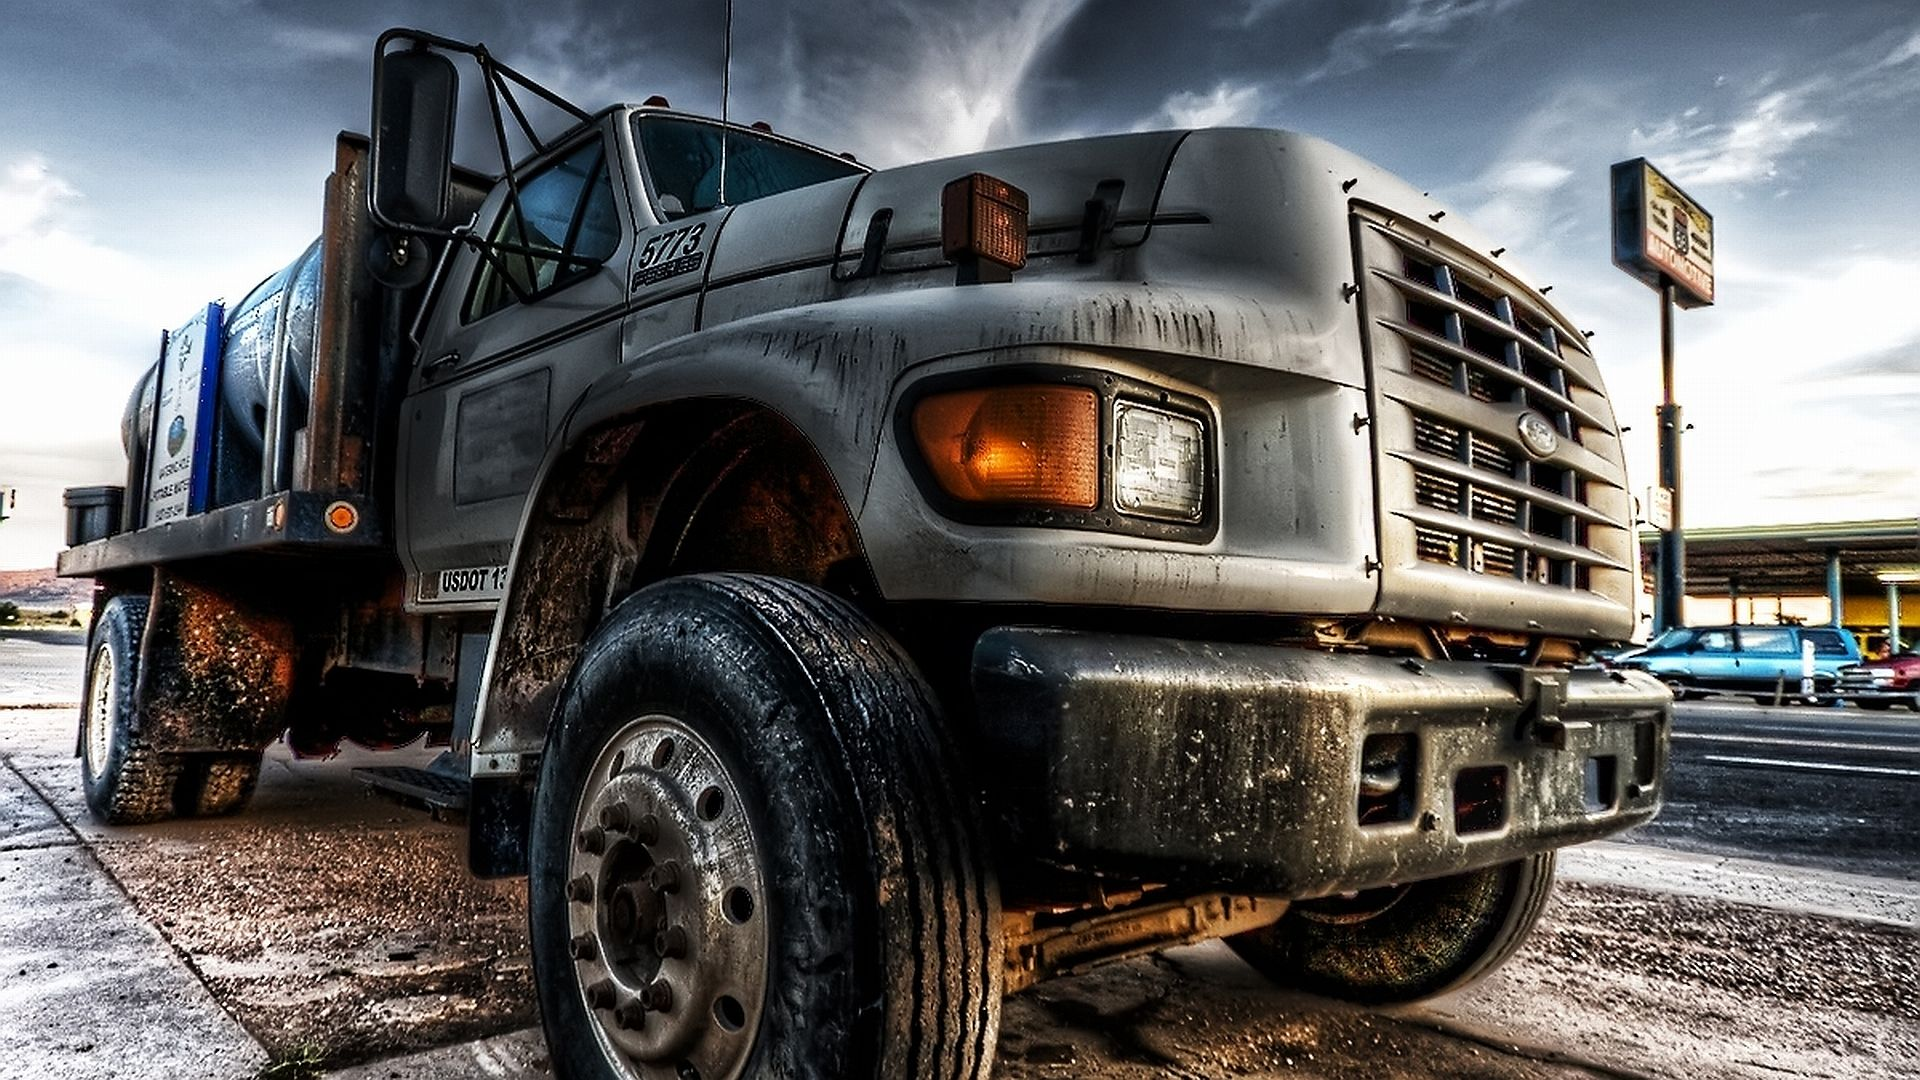 volvo truck wallpapers high resolution. truck wallpapers 8 volvo high resolution